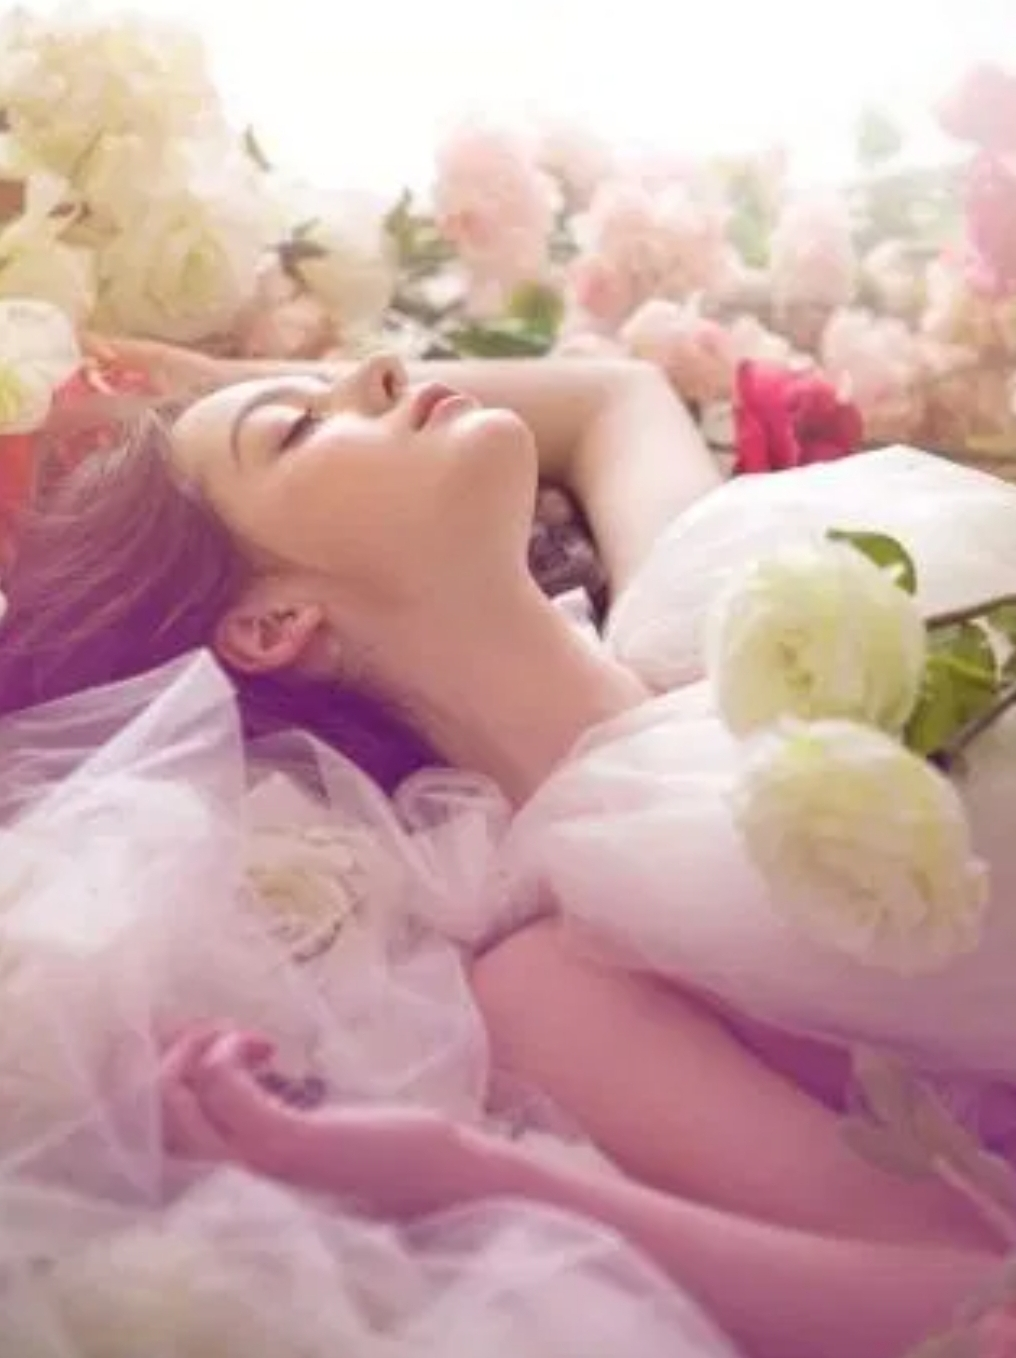 The woman are the flowers of springtime